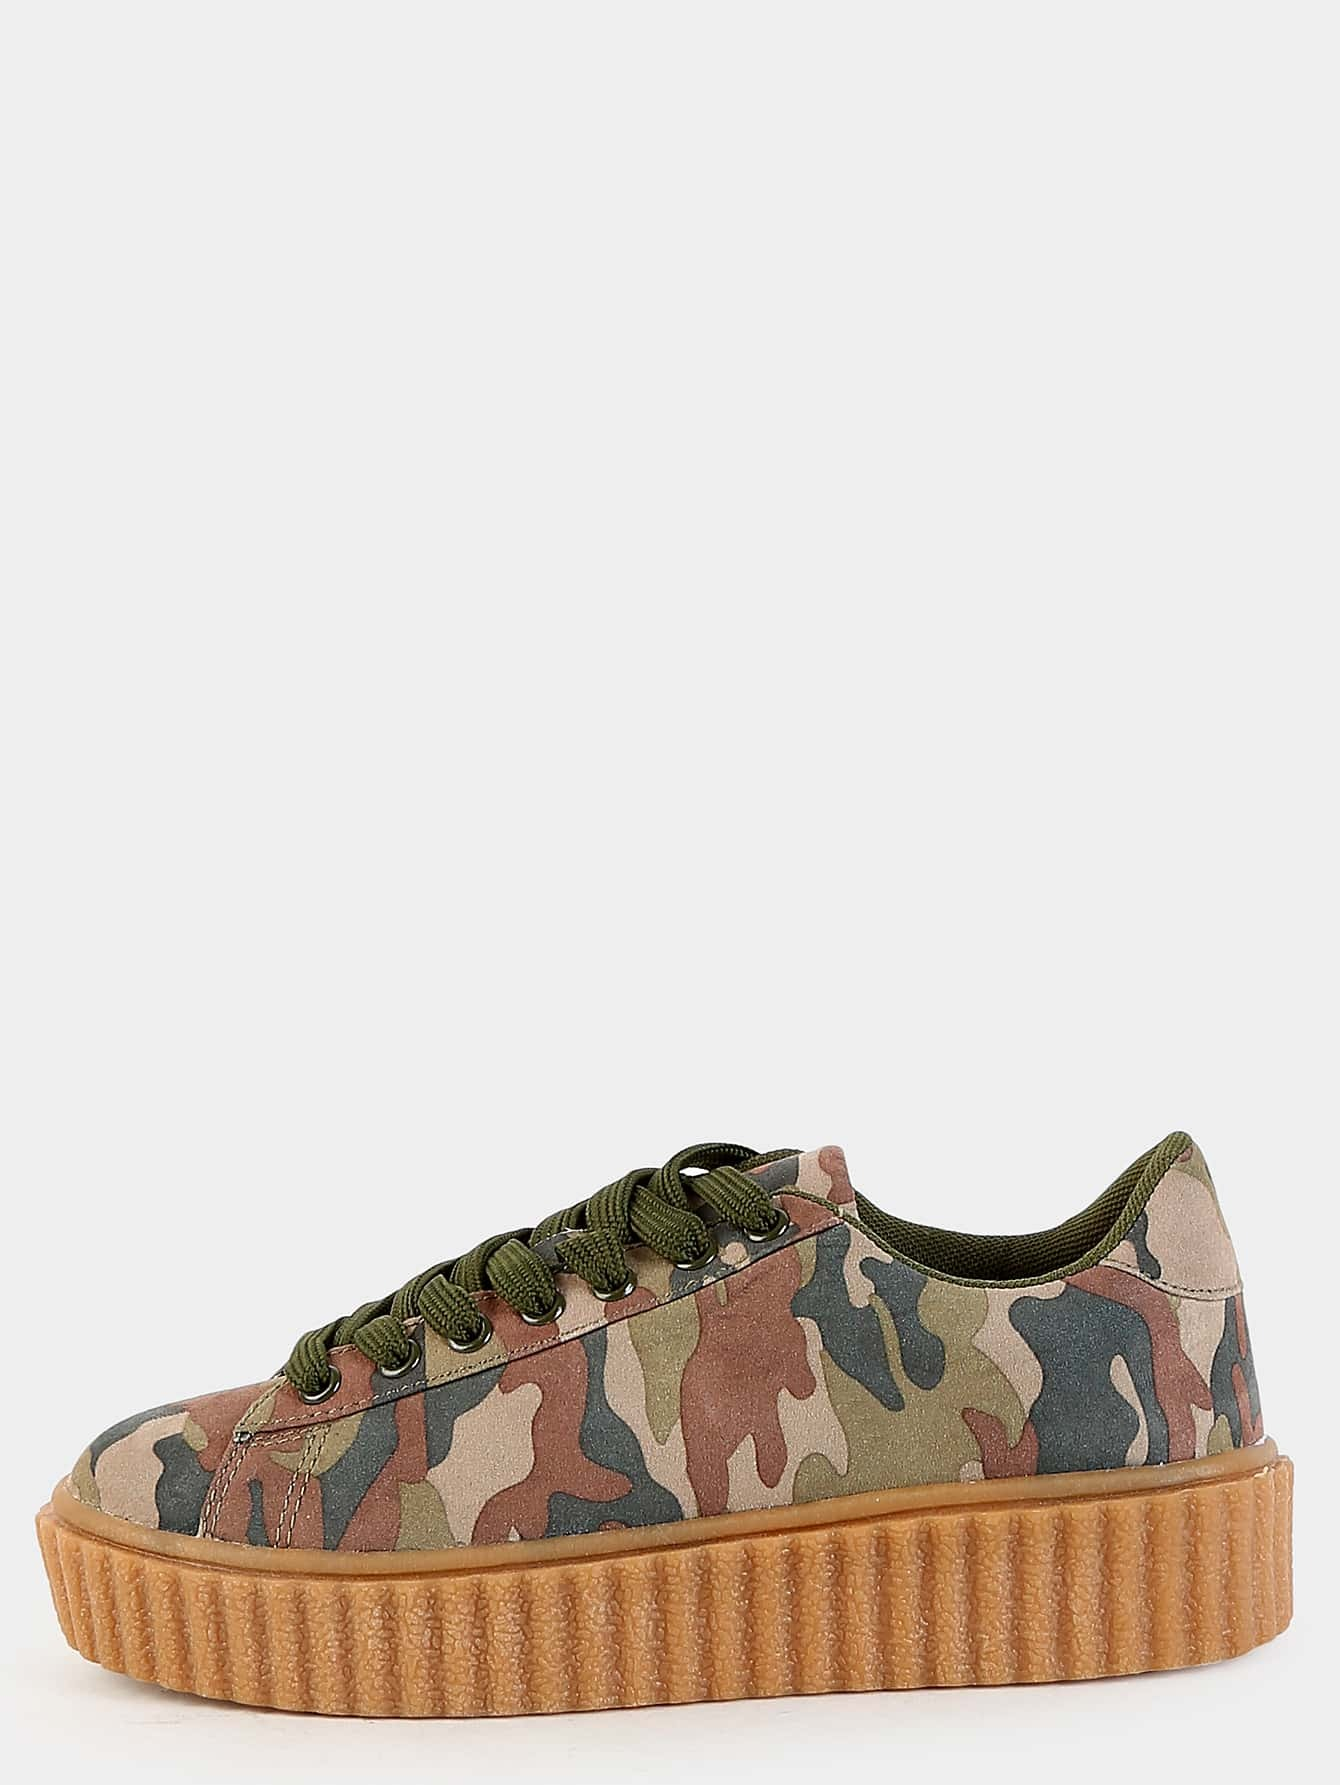 Lace Up Suede Sneakers CAMOUFLAGELace Up Suede Sneakers CAMOUFLAGE<br><br>color: Multicolor<br>size: US10,US7,US8.5,US8